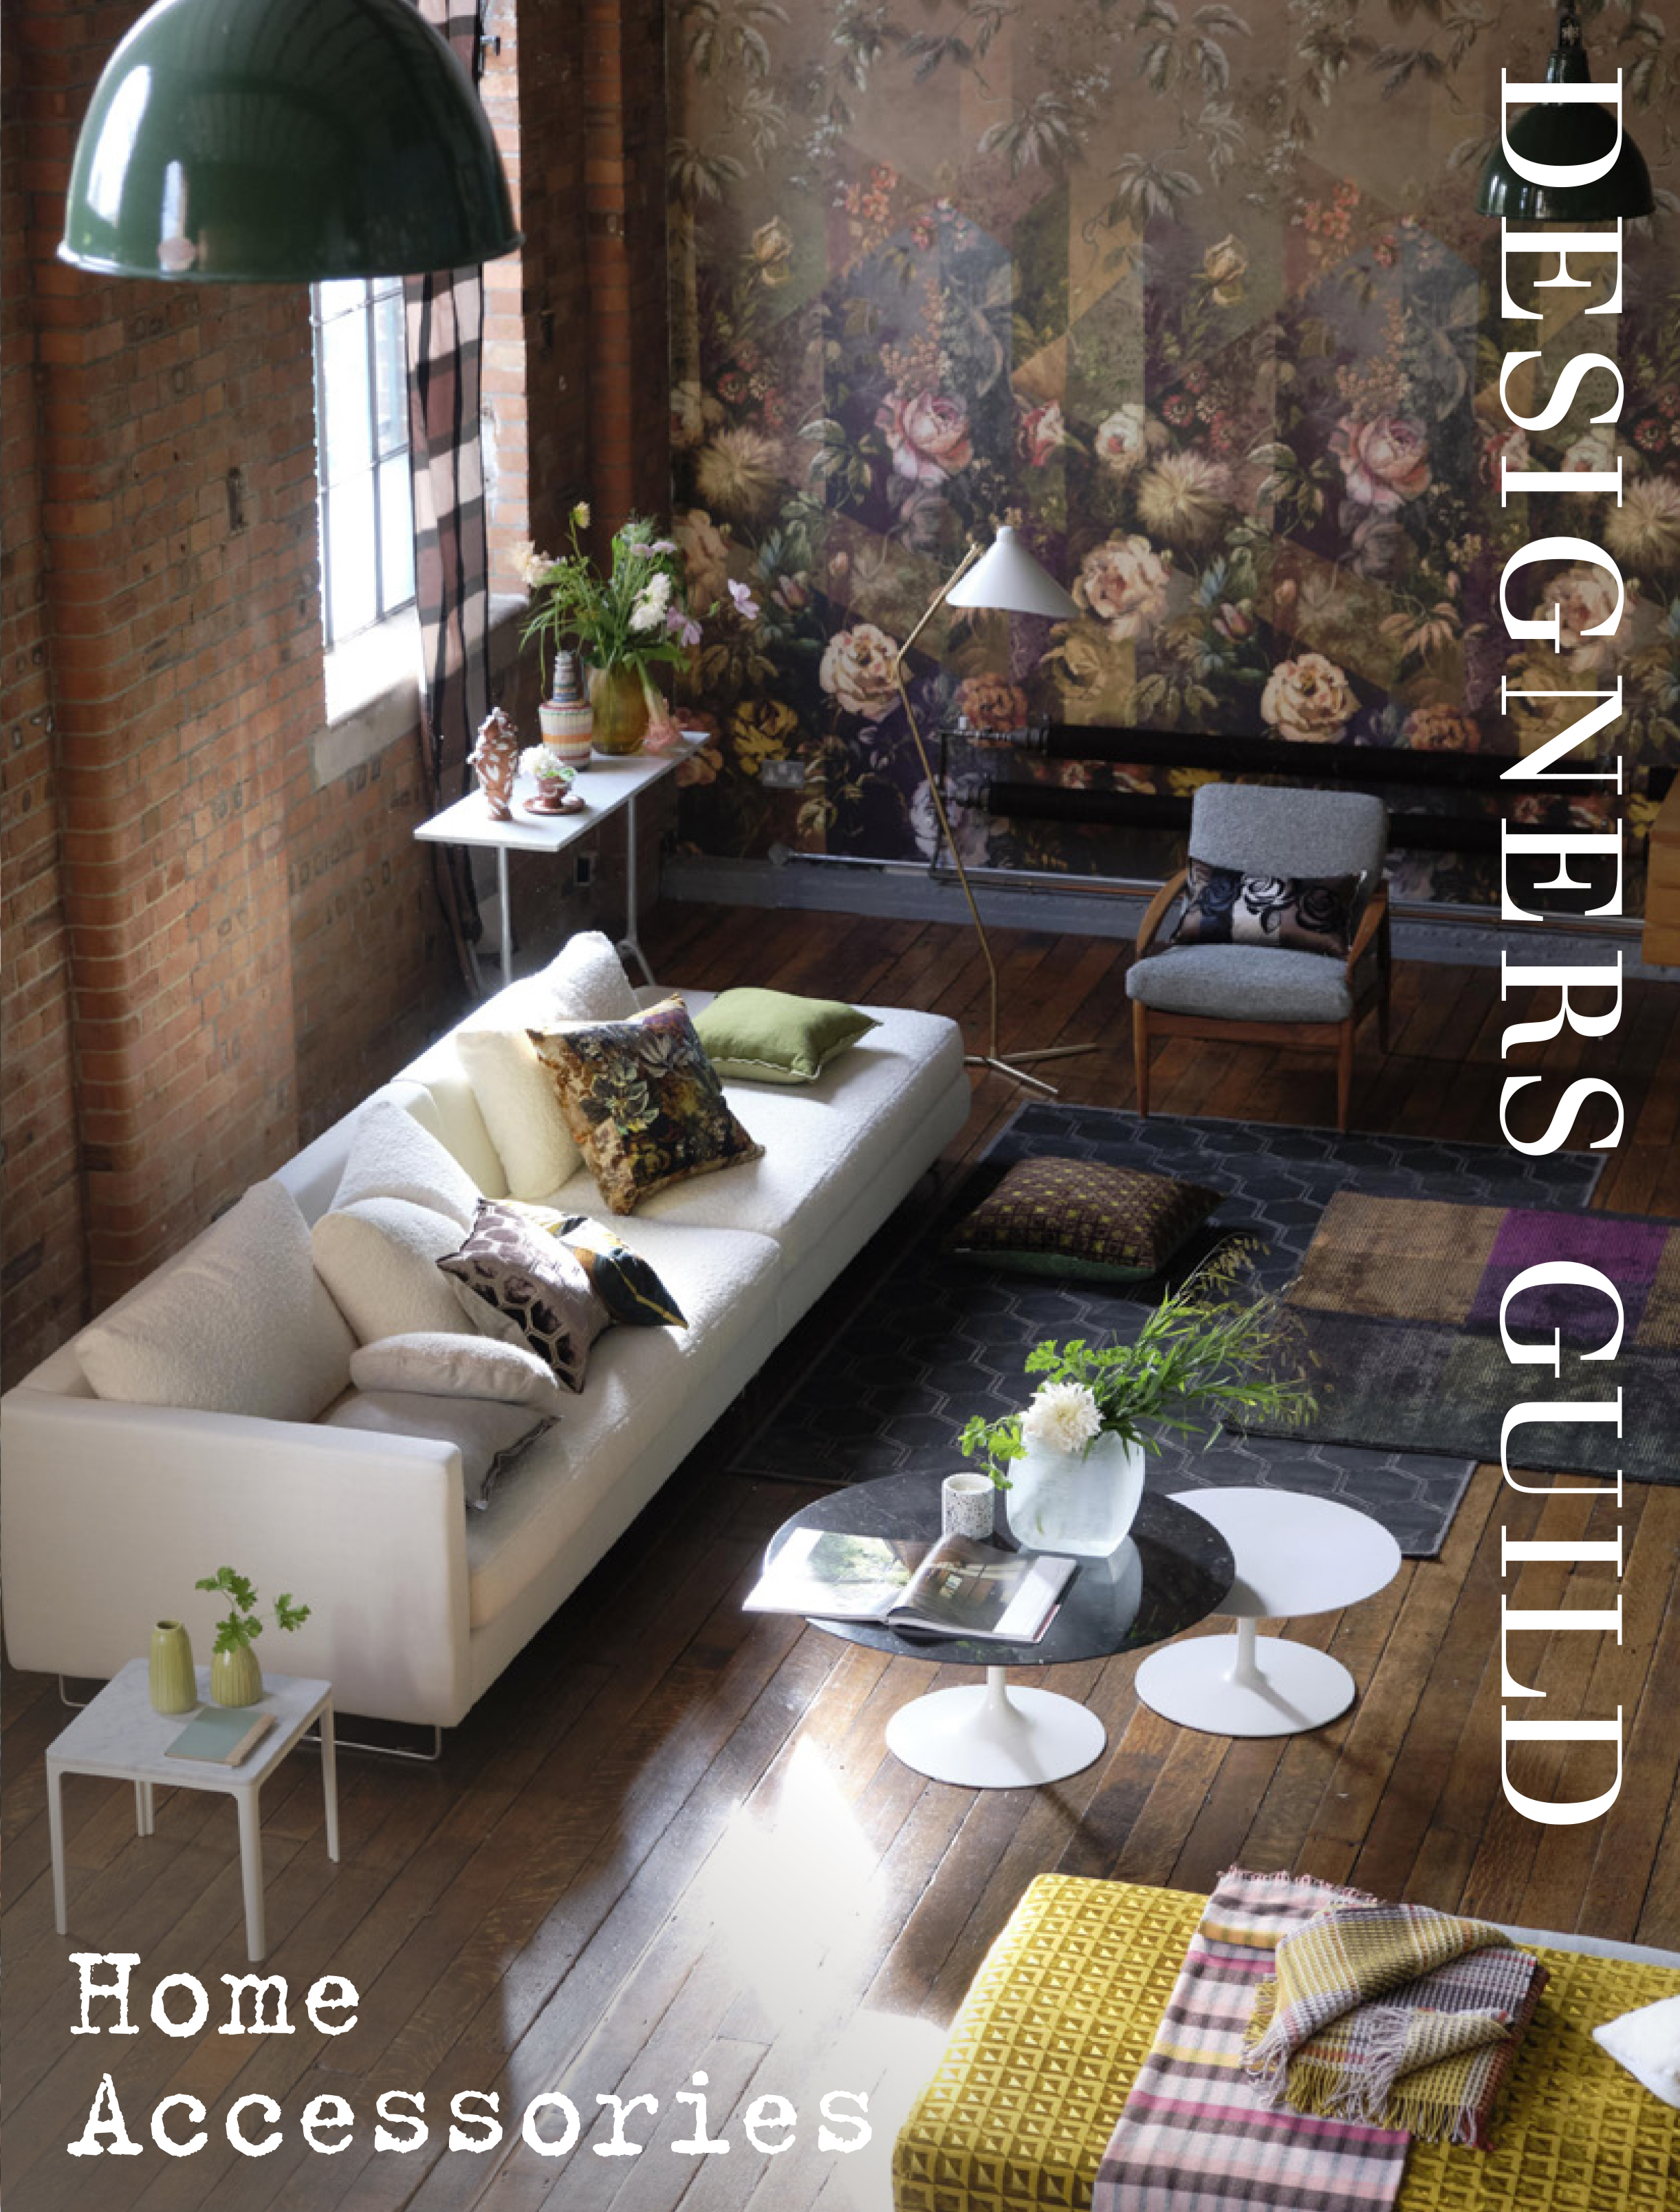 DESIGNERS GUILD HOME ACCESSORIES SPRING/SUMMER 2021